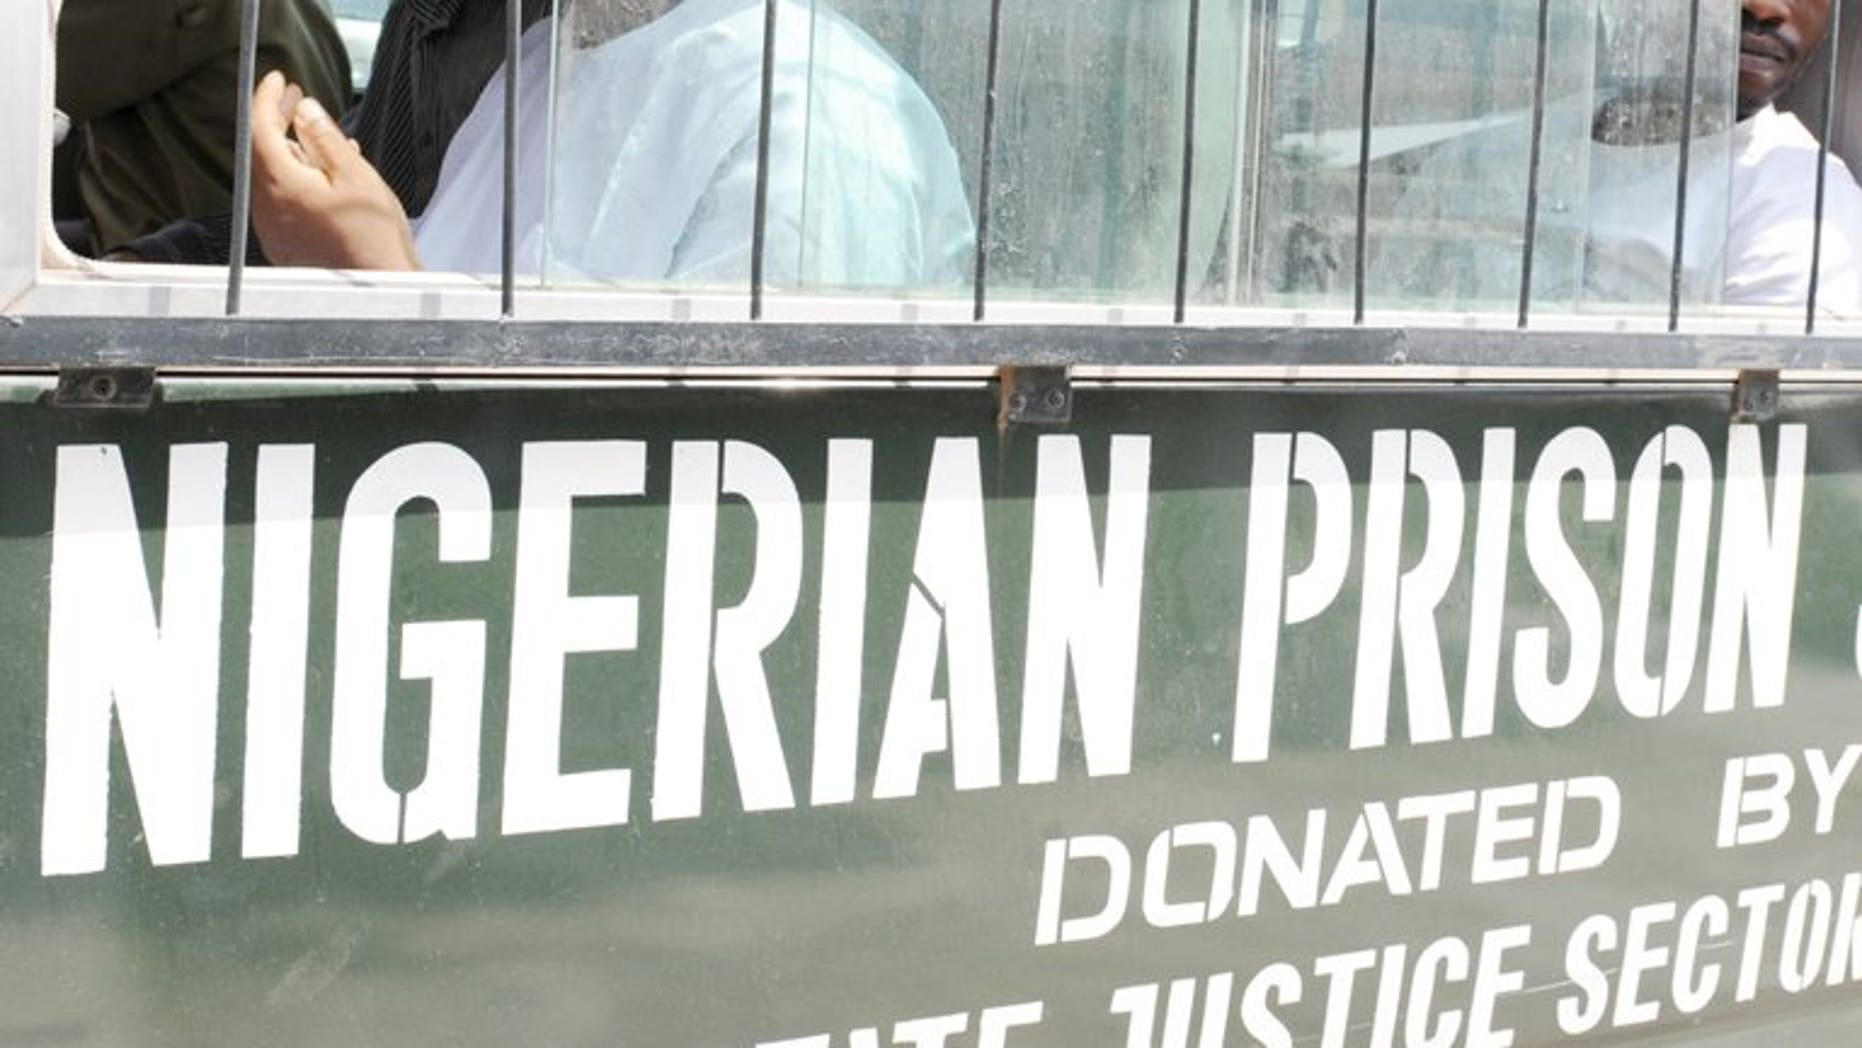 Prisoners sit on March 7, 2011 in a bus after a hearing in Lagos. Nigerian authorities on Monday hanged four prisoners, an official said, in what was believed to be the country's first known executions since 2006, drawing outrage from rights activists.